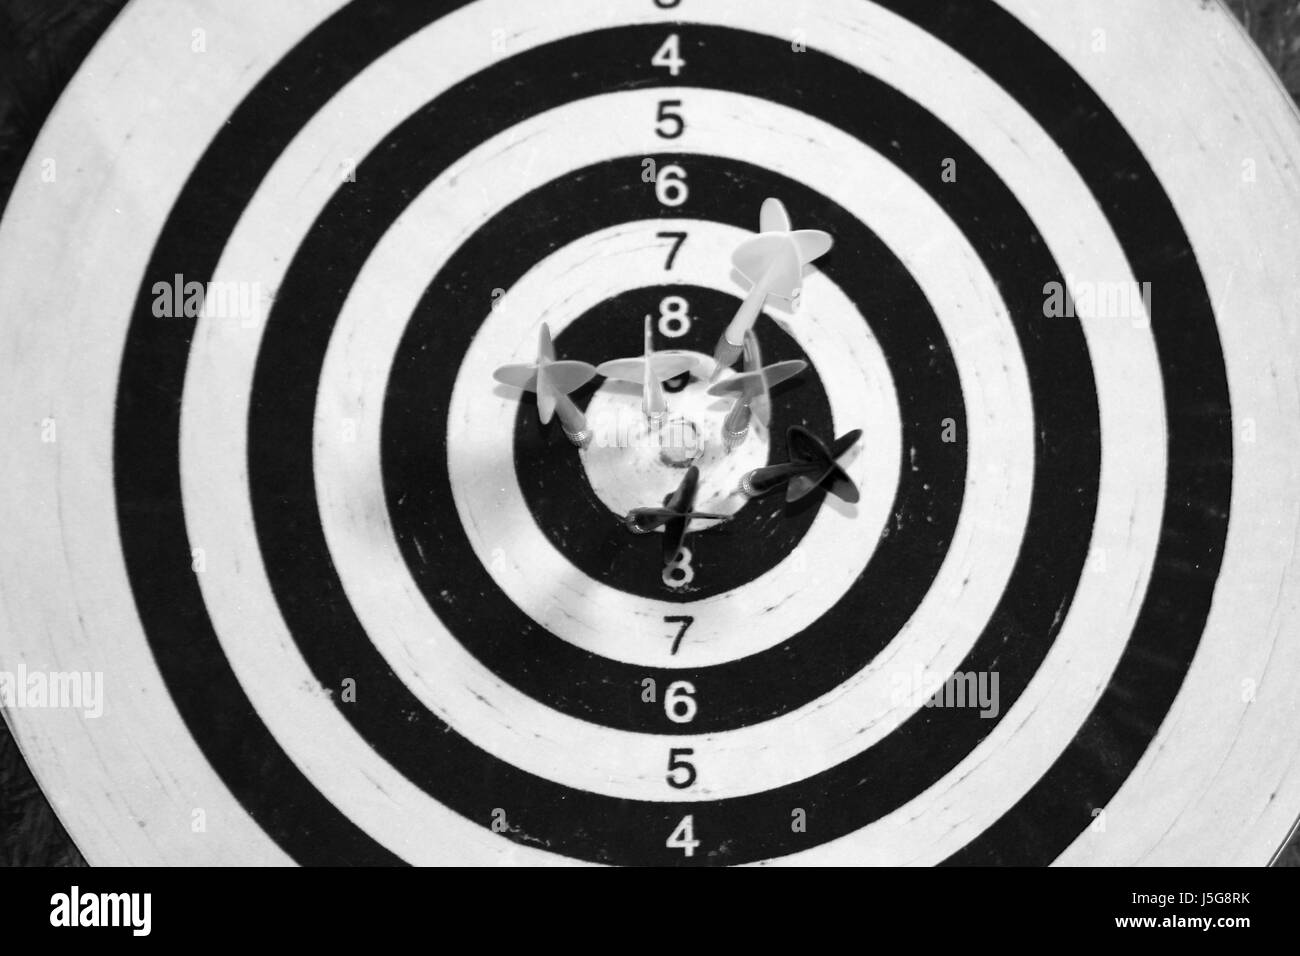 Black and white dart board with darts in the center. - Stock Image